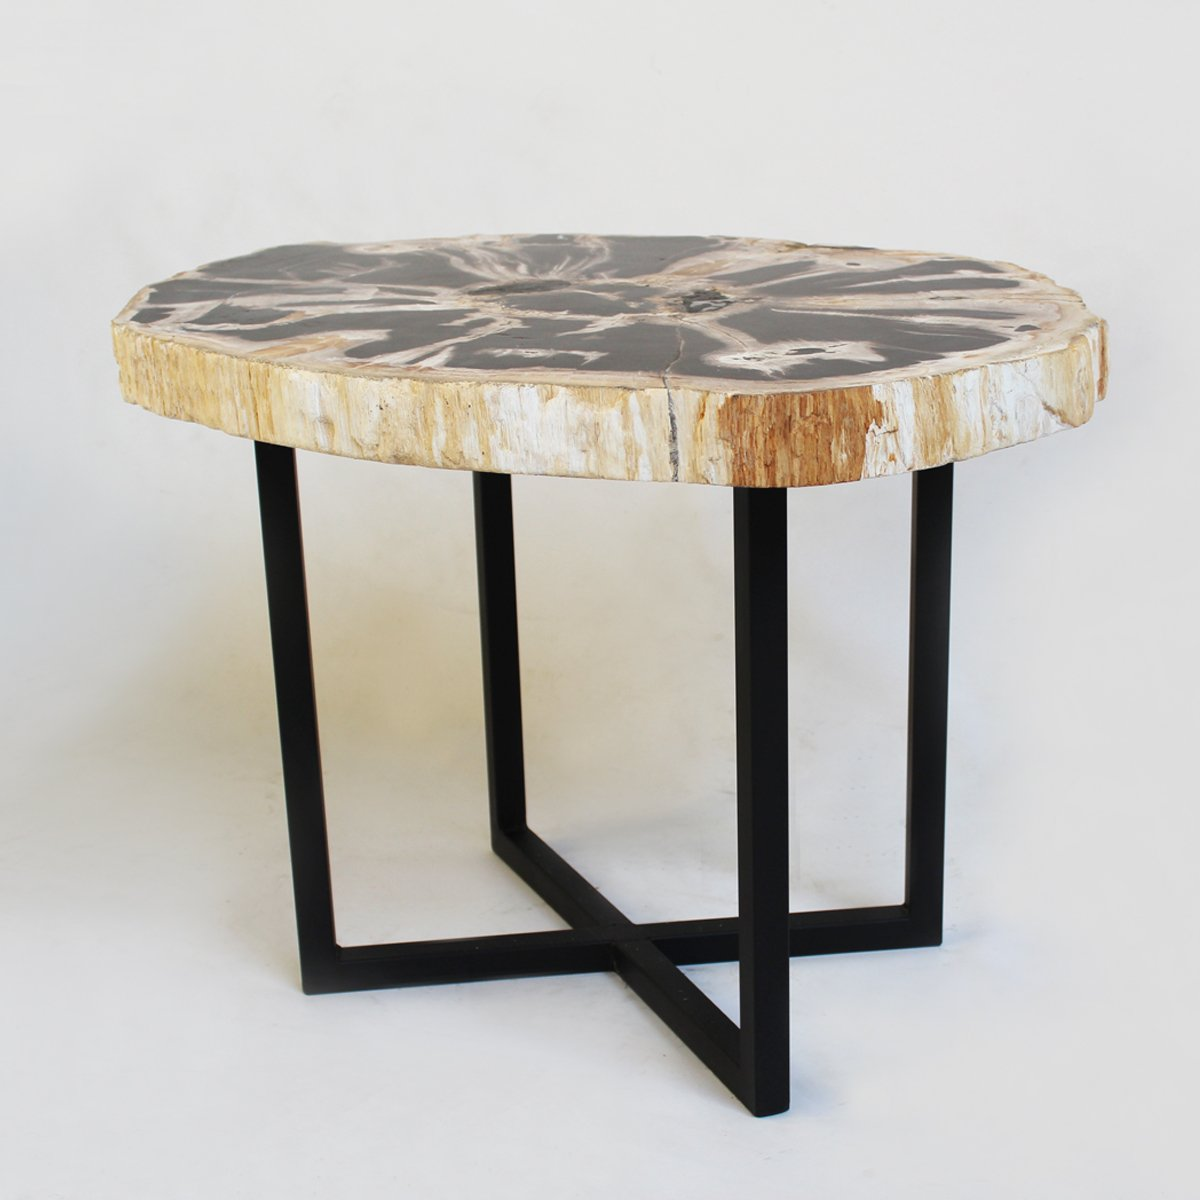 petrified wood side table home kitchen accent small round glass dining extra large tablecloths pub tops chairs with arms coffee tray pottery barn narrow console inches deep walnut